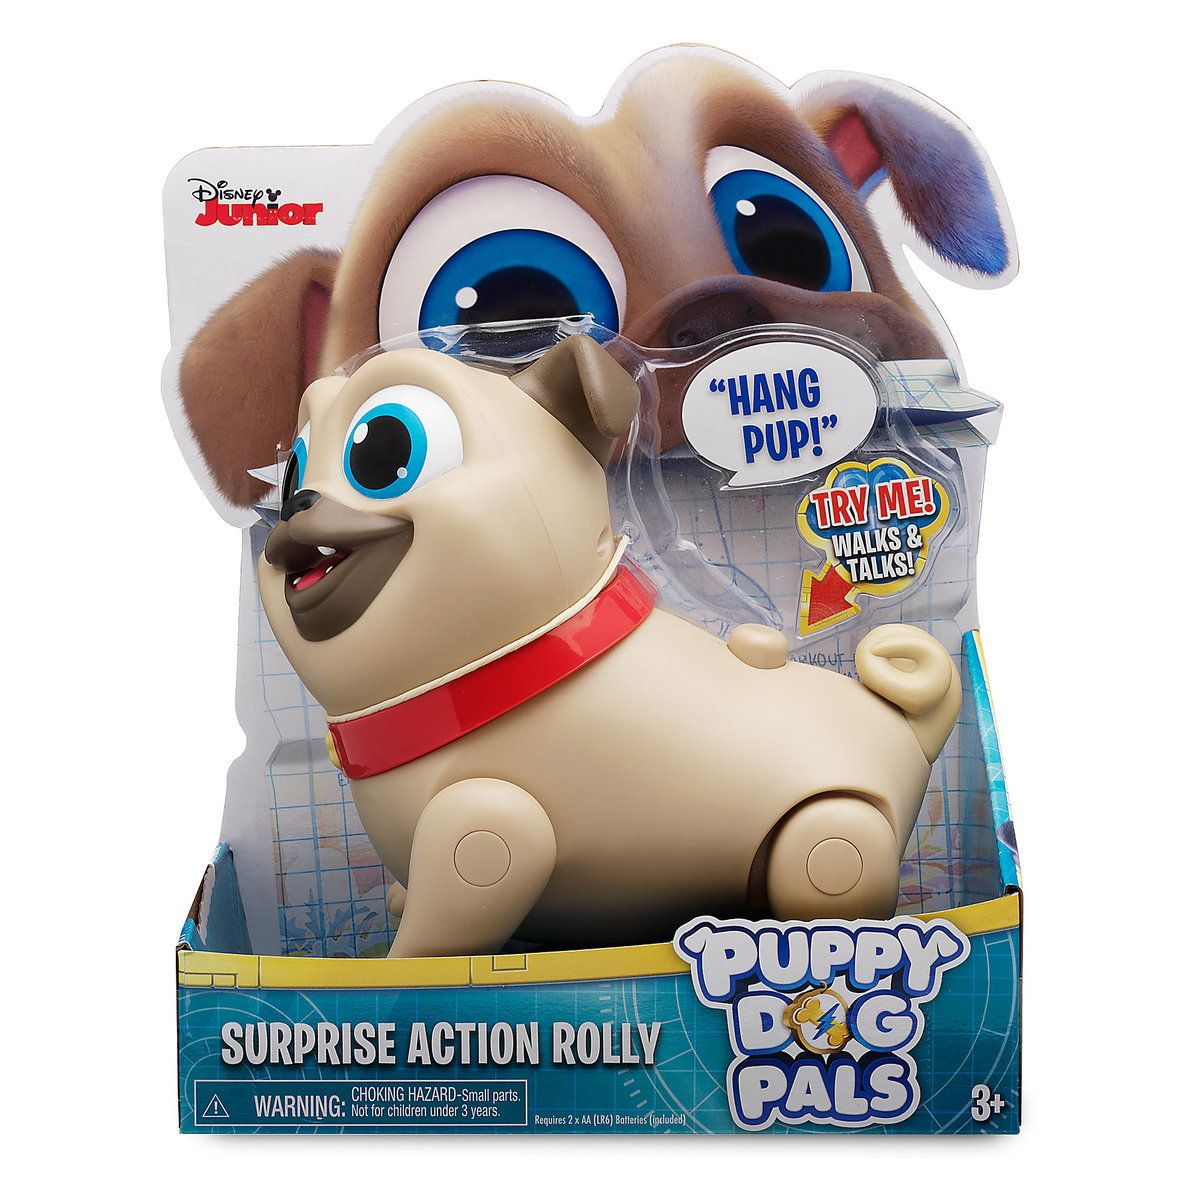 Rolly Surprise Action Toy Puppy Dog Pals Toy Puppies Dogs